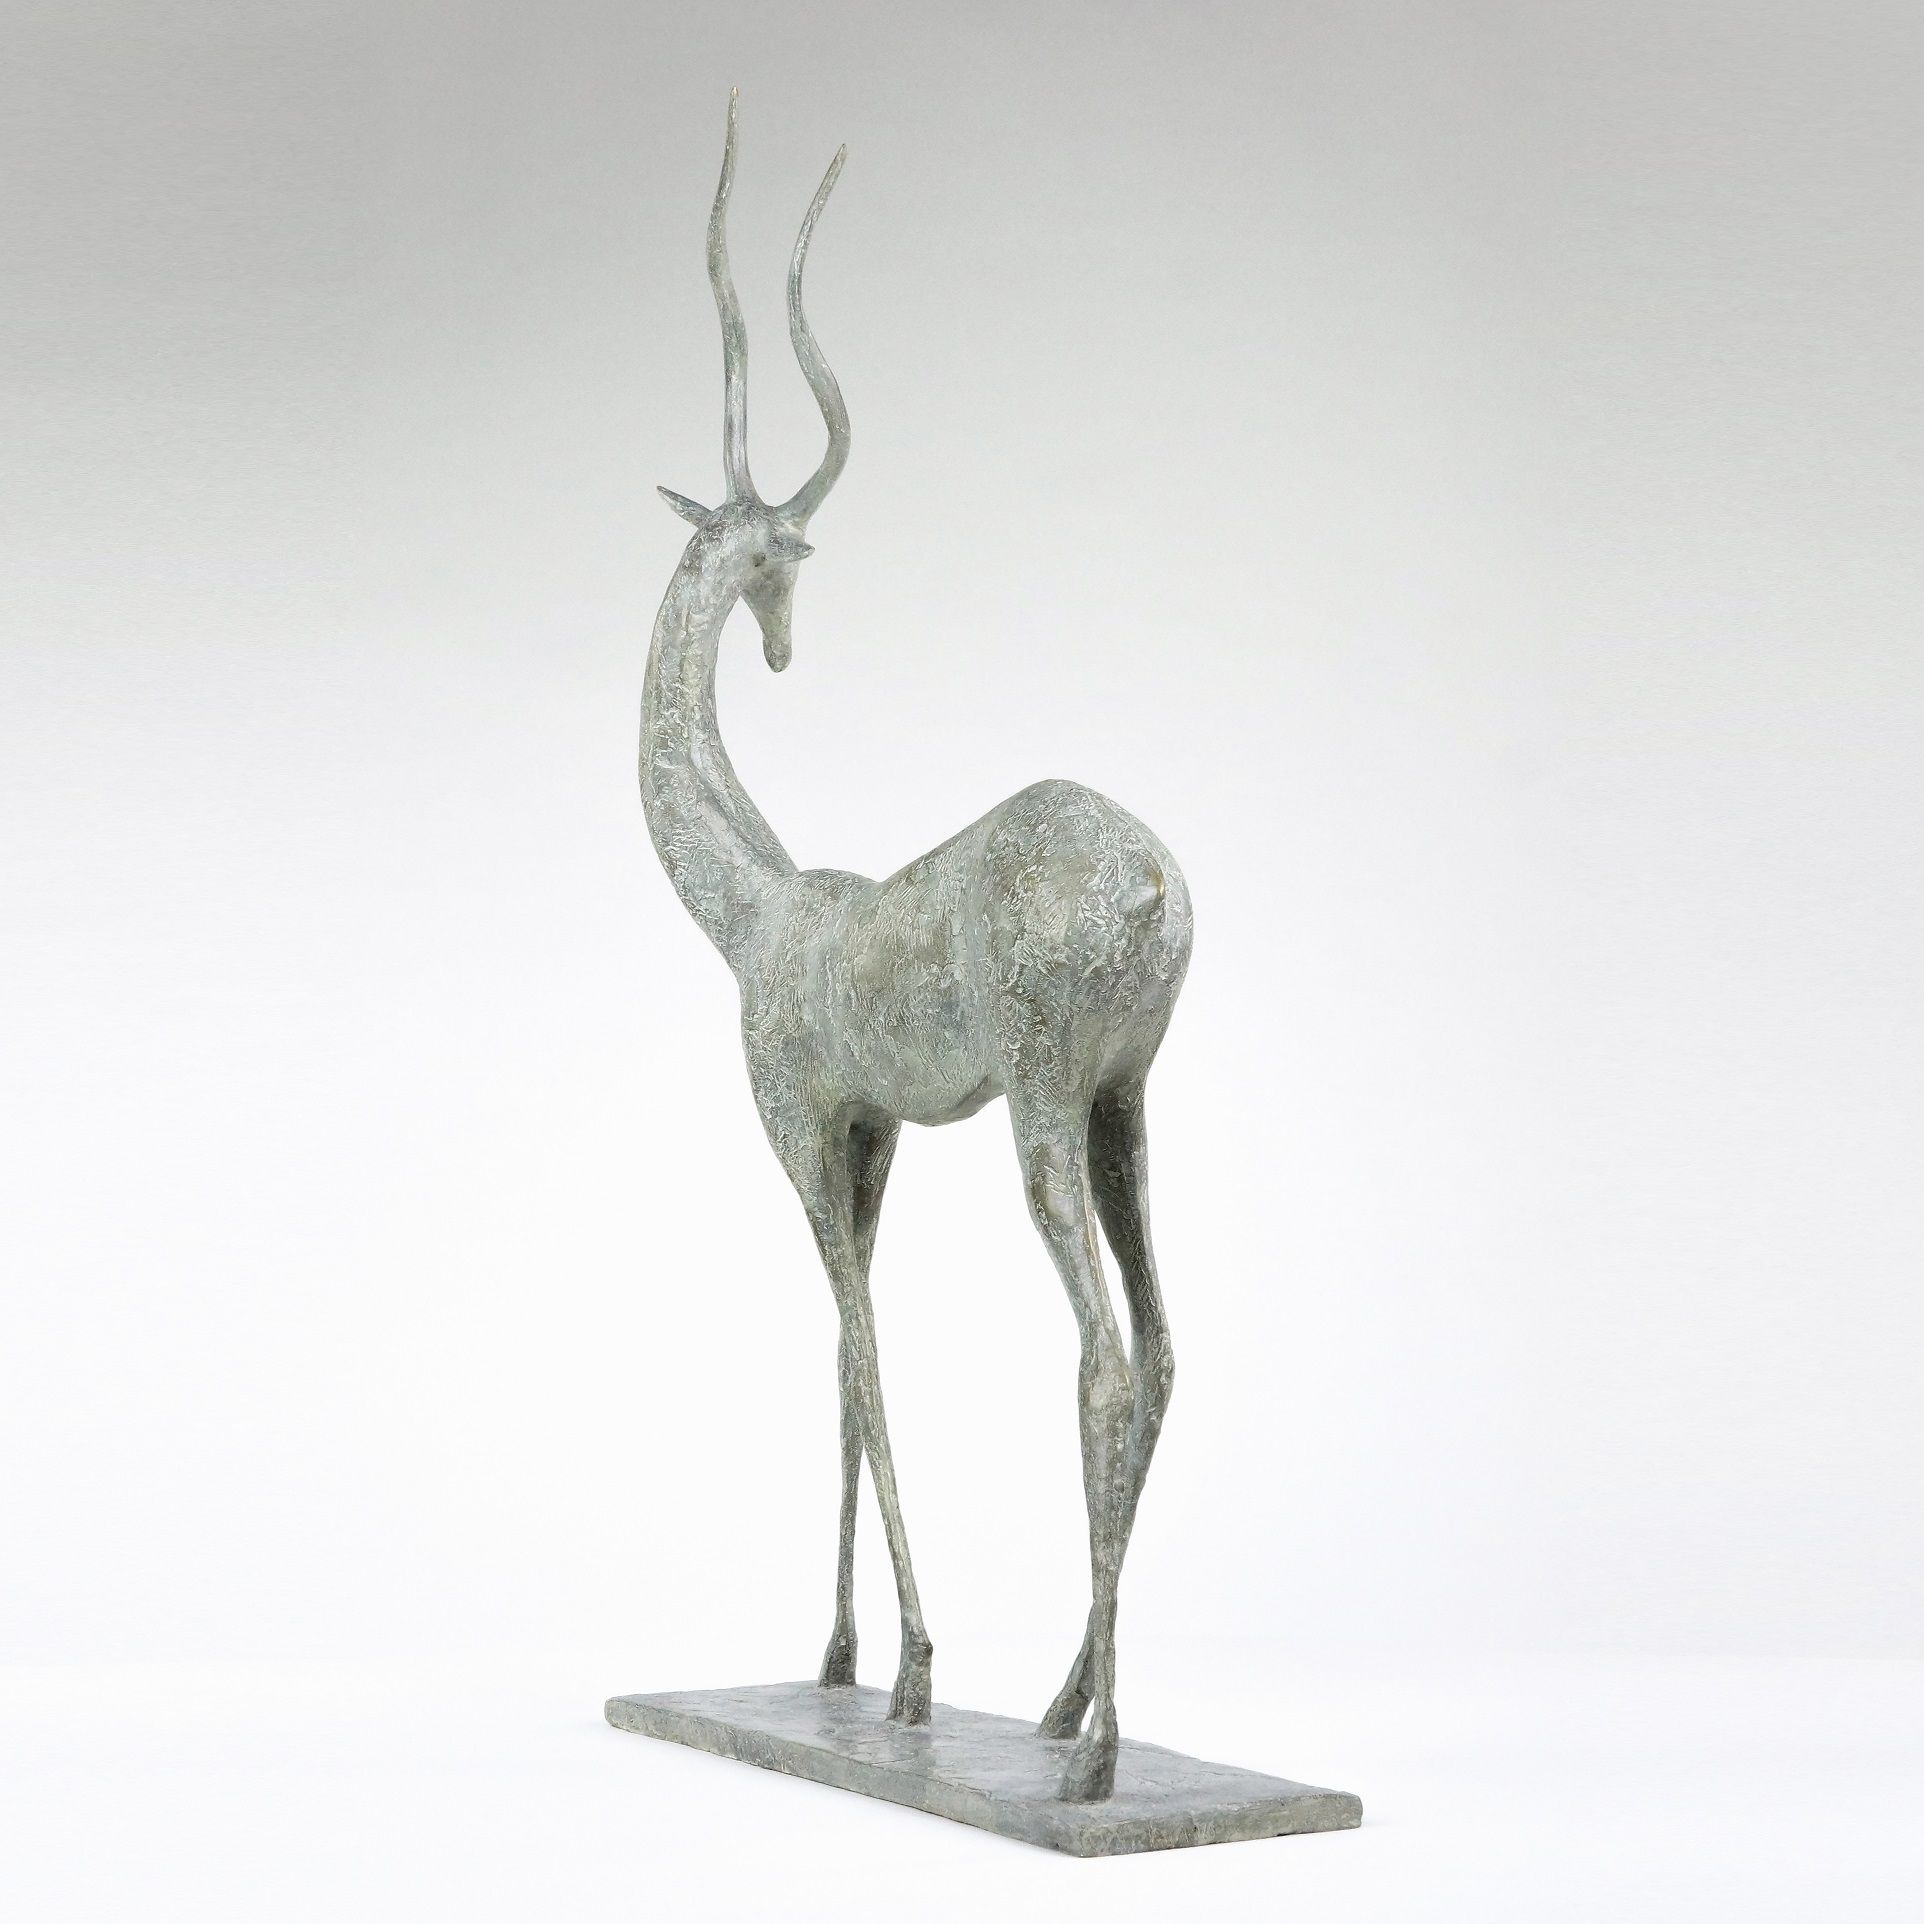 Gazelle II,Pierre Yermia,Sculpture, detail 3